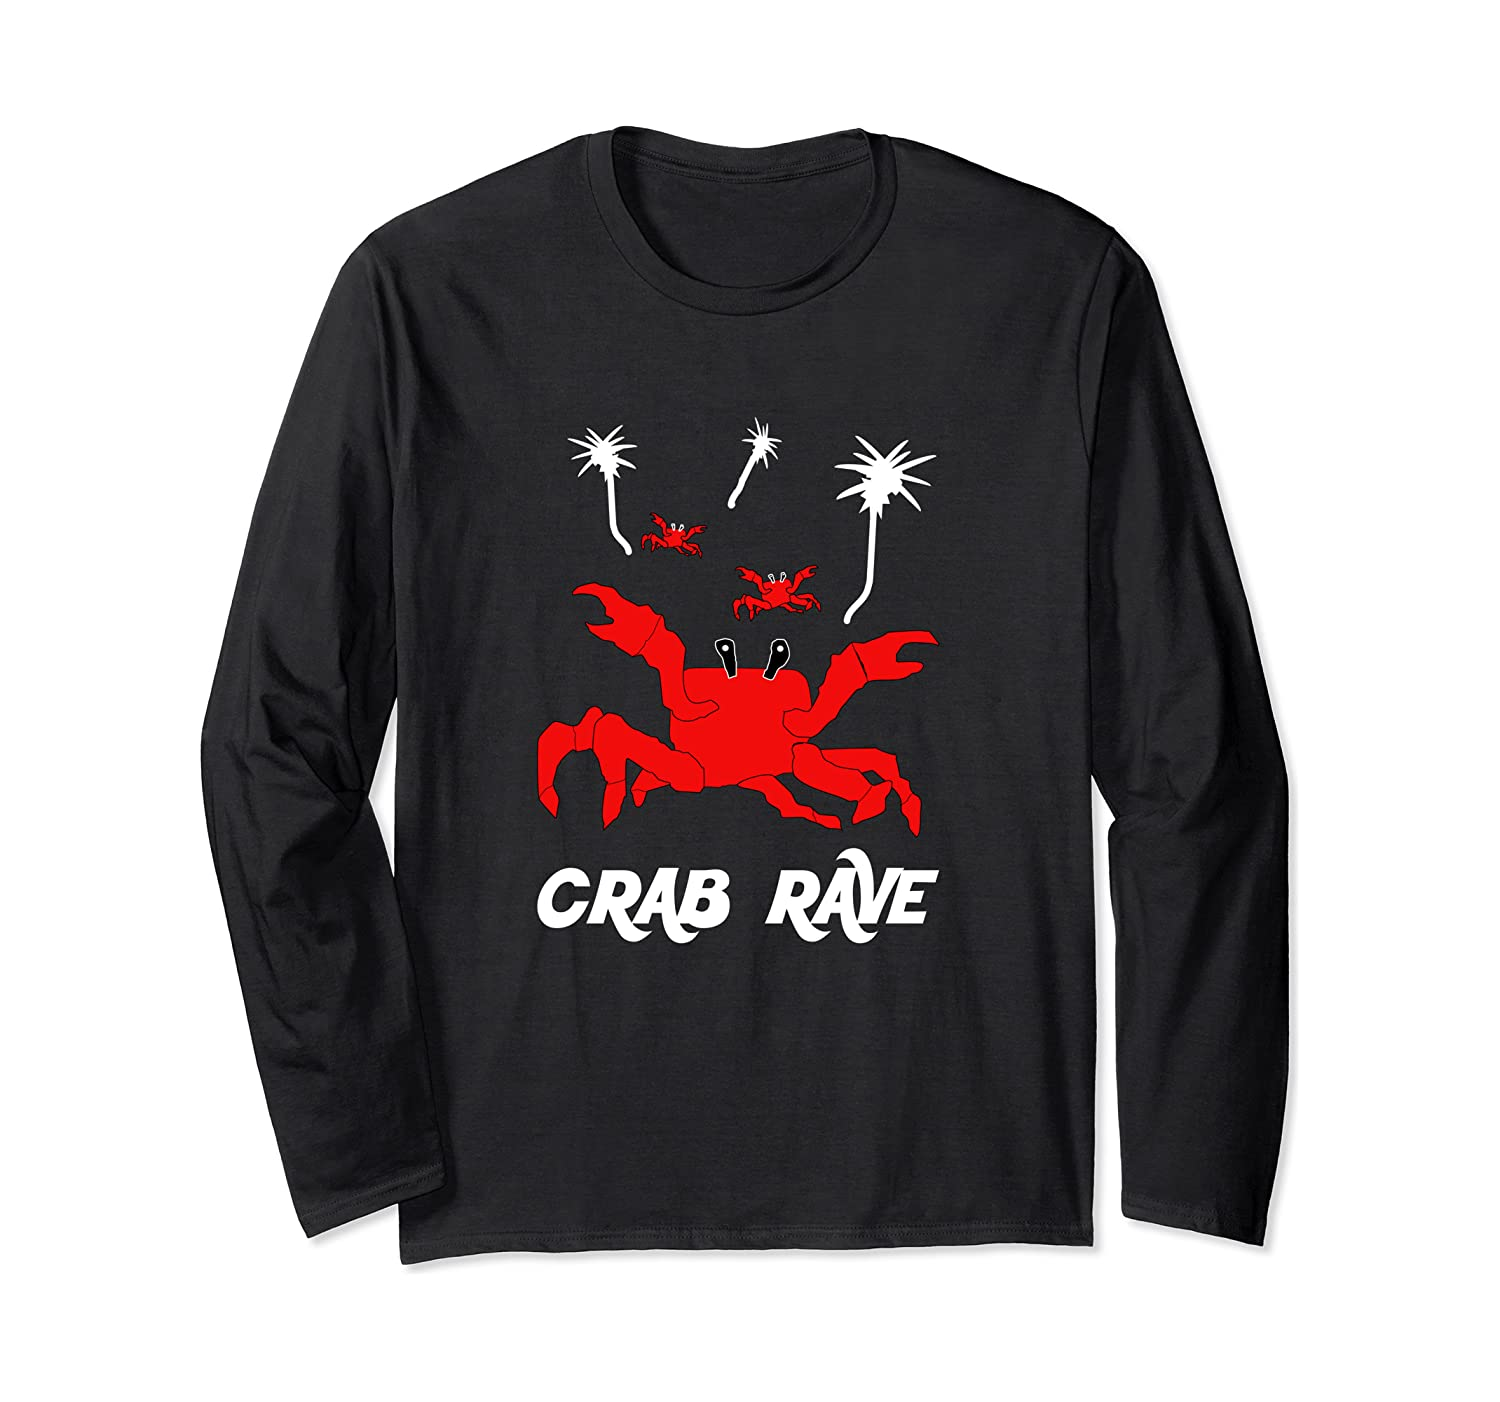 Crab Rave - Meme Crab Dance Party With Palm Trees Long ...